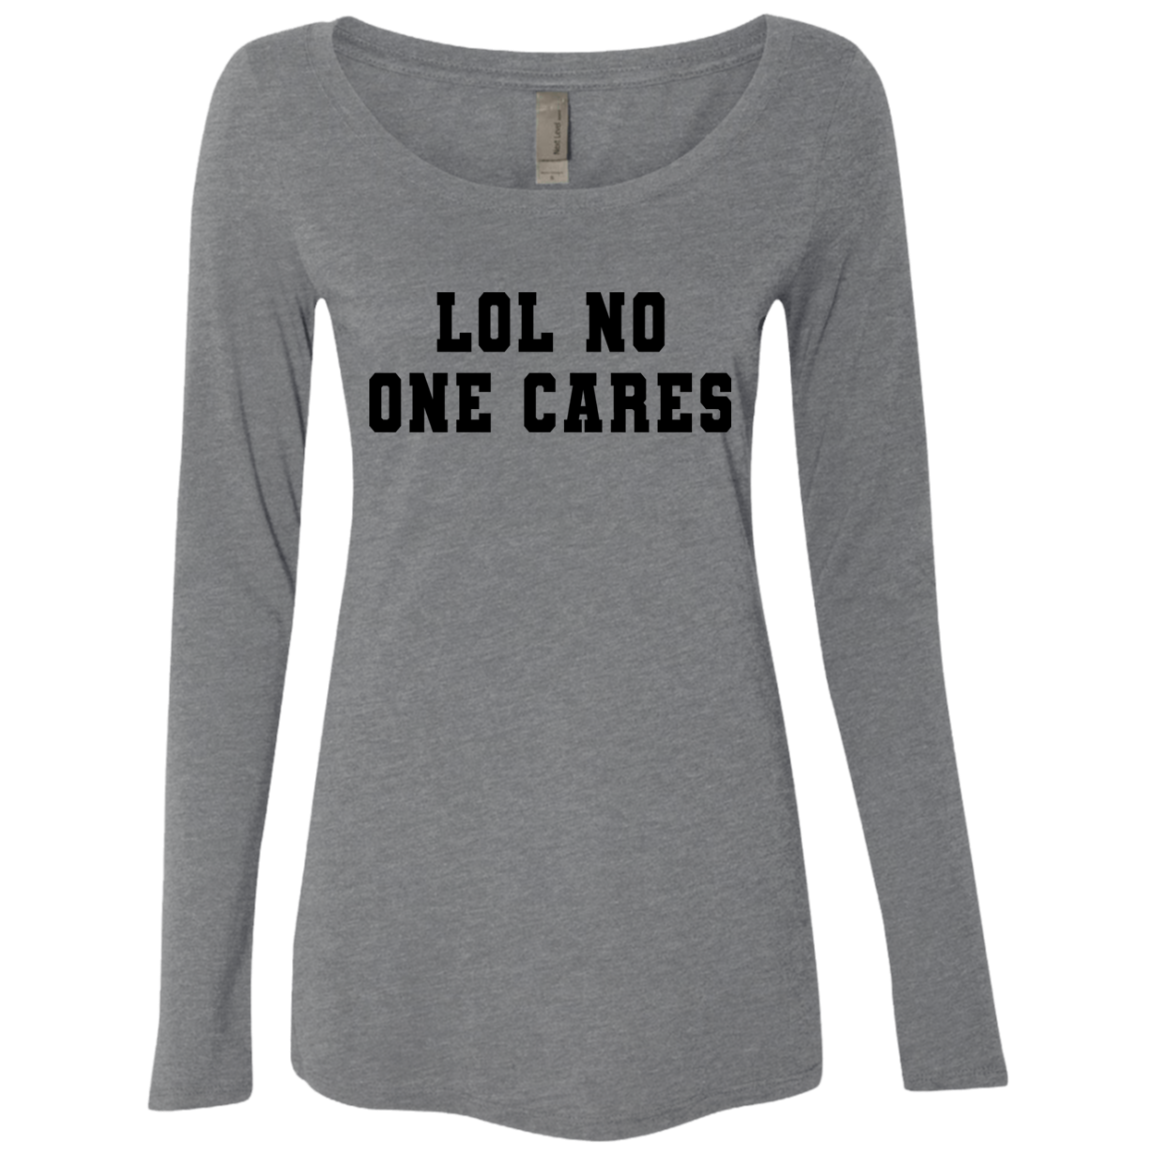 Lol No One Cares Women's Long Sleeve Tee